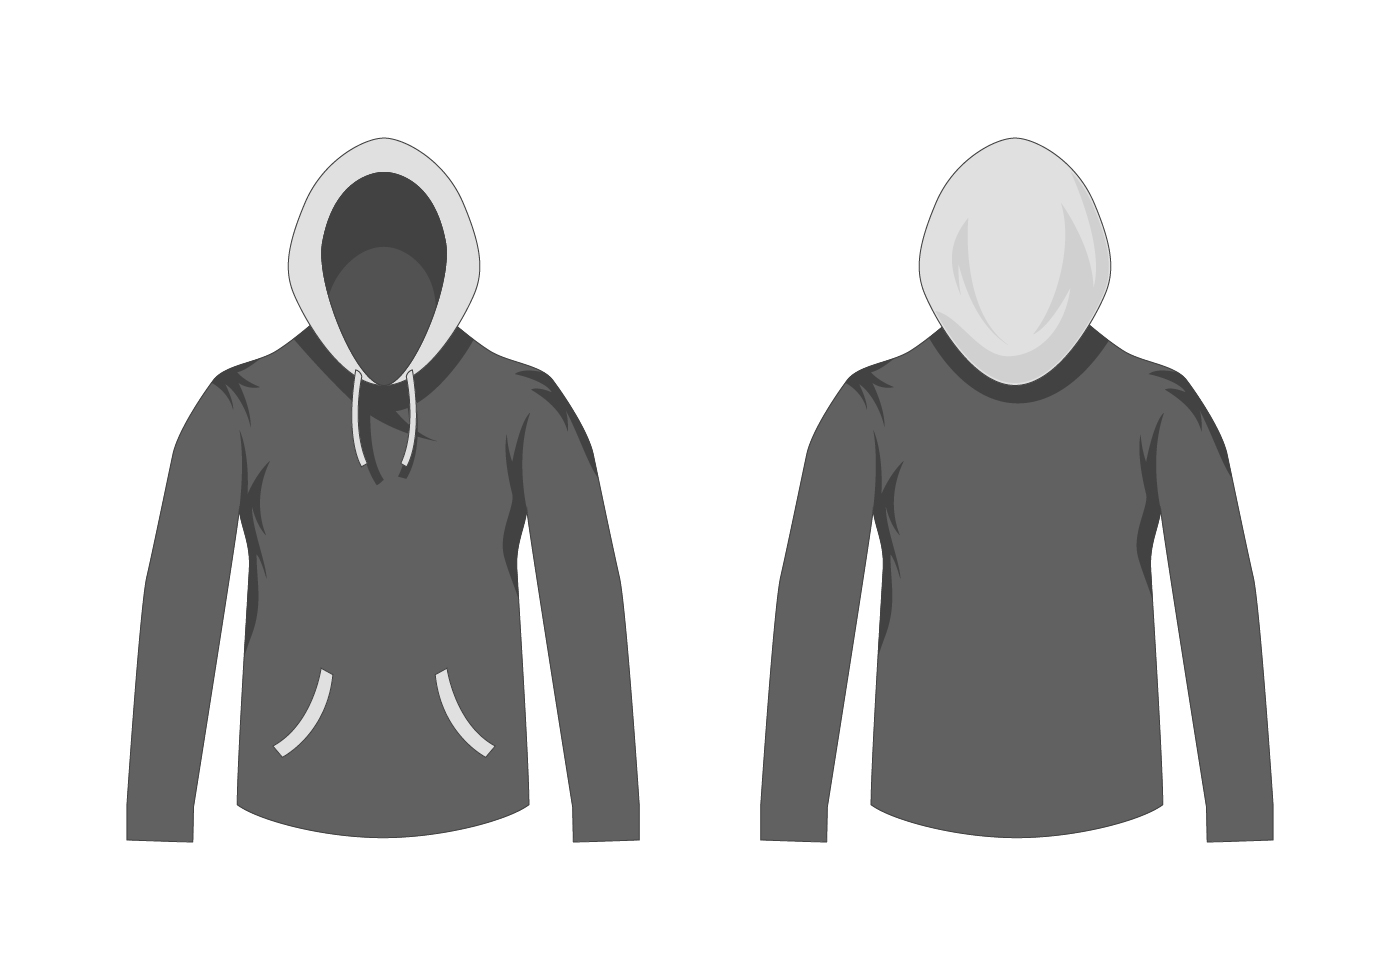 blank grey hooded sweatshirt template - Kostenlose Vektor-Kunst ...